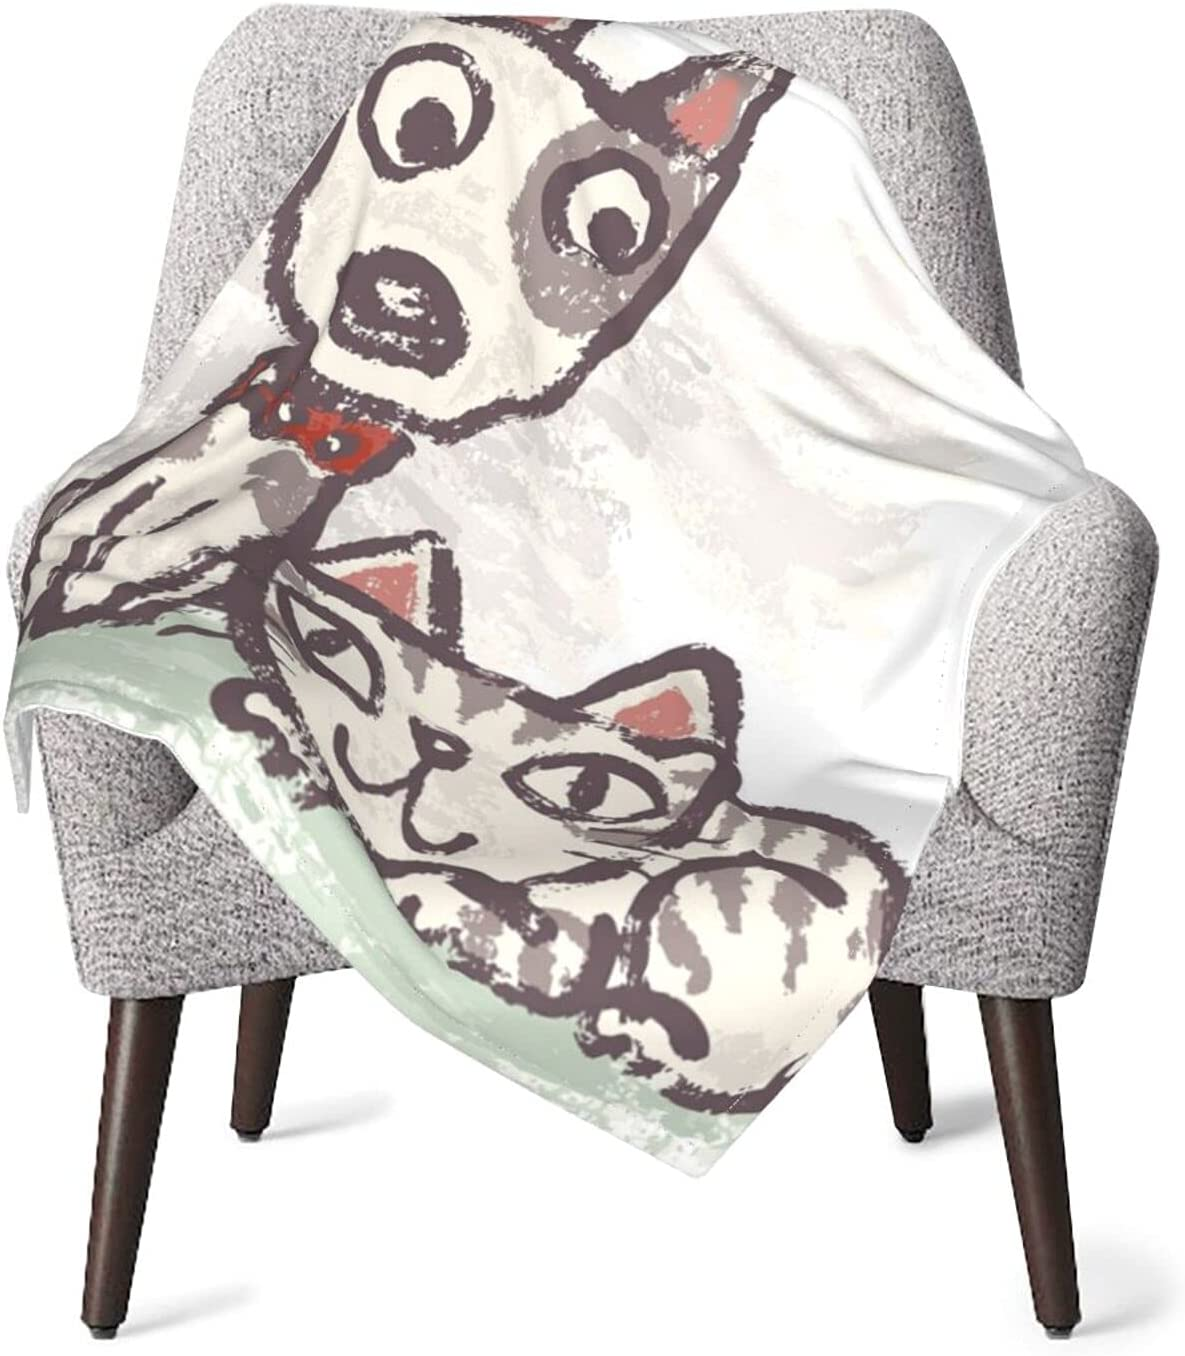 Life Sale of Dog and Cat Baby Max 71% OFF Unisex Bundle Blankets Receiving